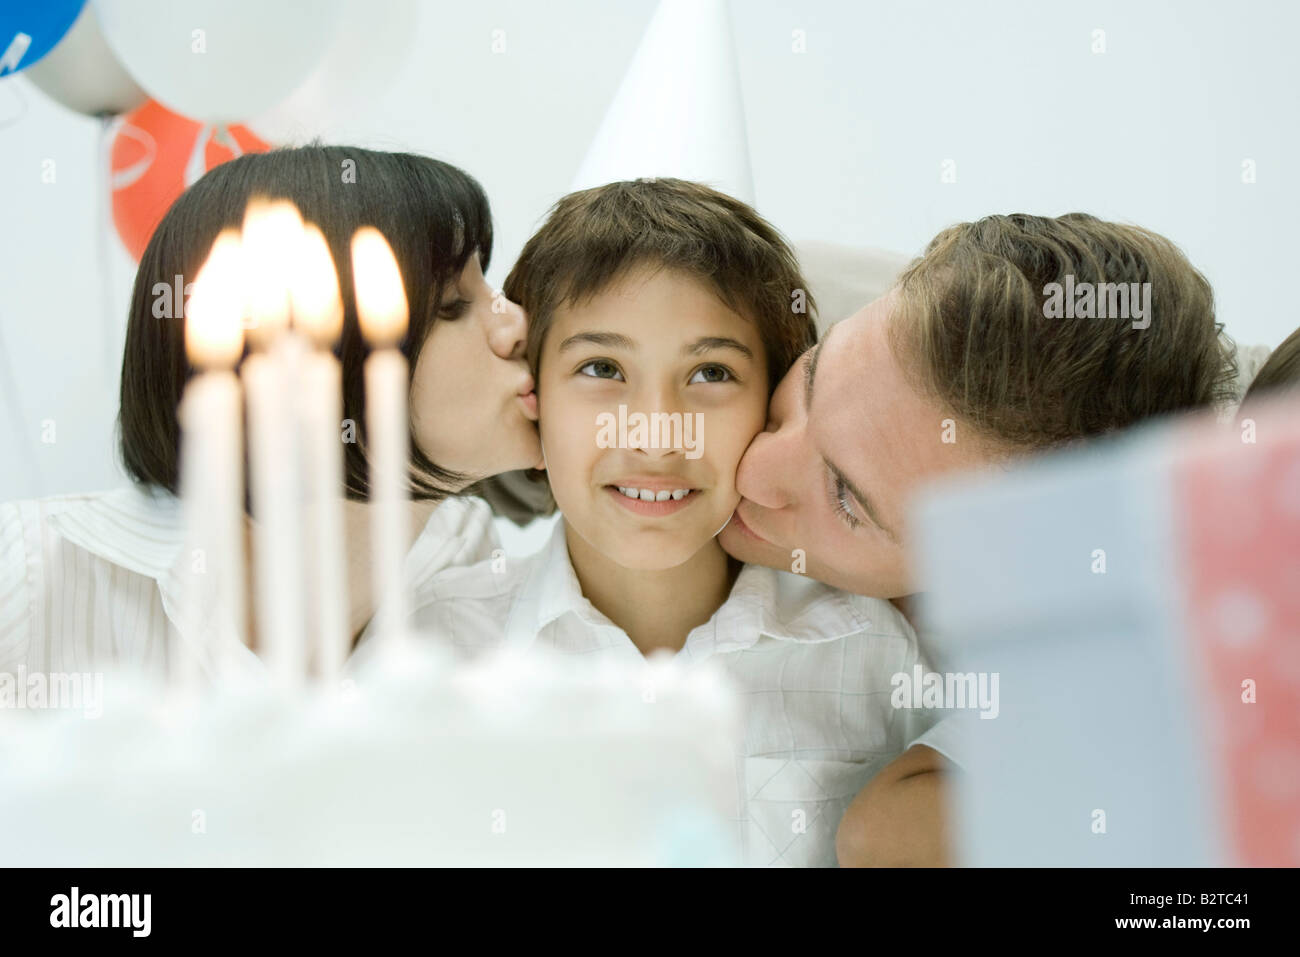 Family behind birthday cake with lit candles, parents kissing boy on cheeks - Stock Image